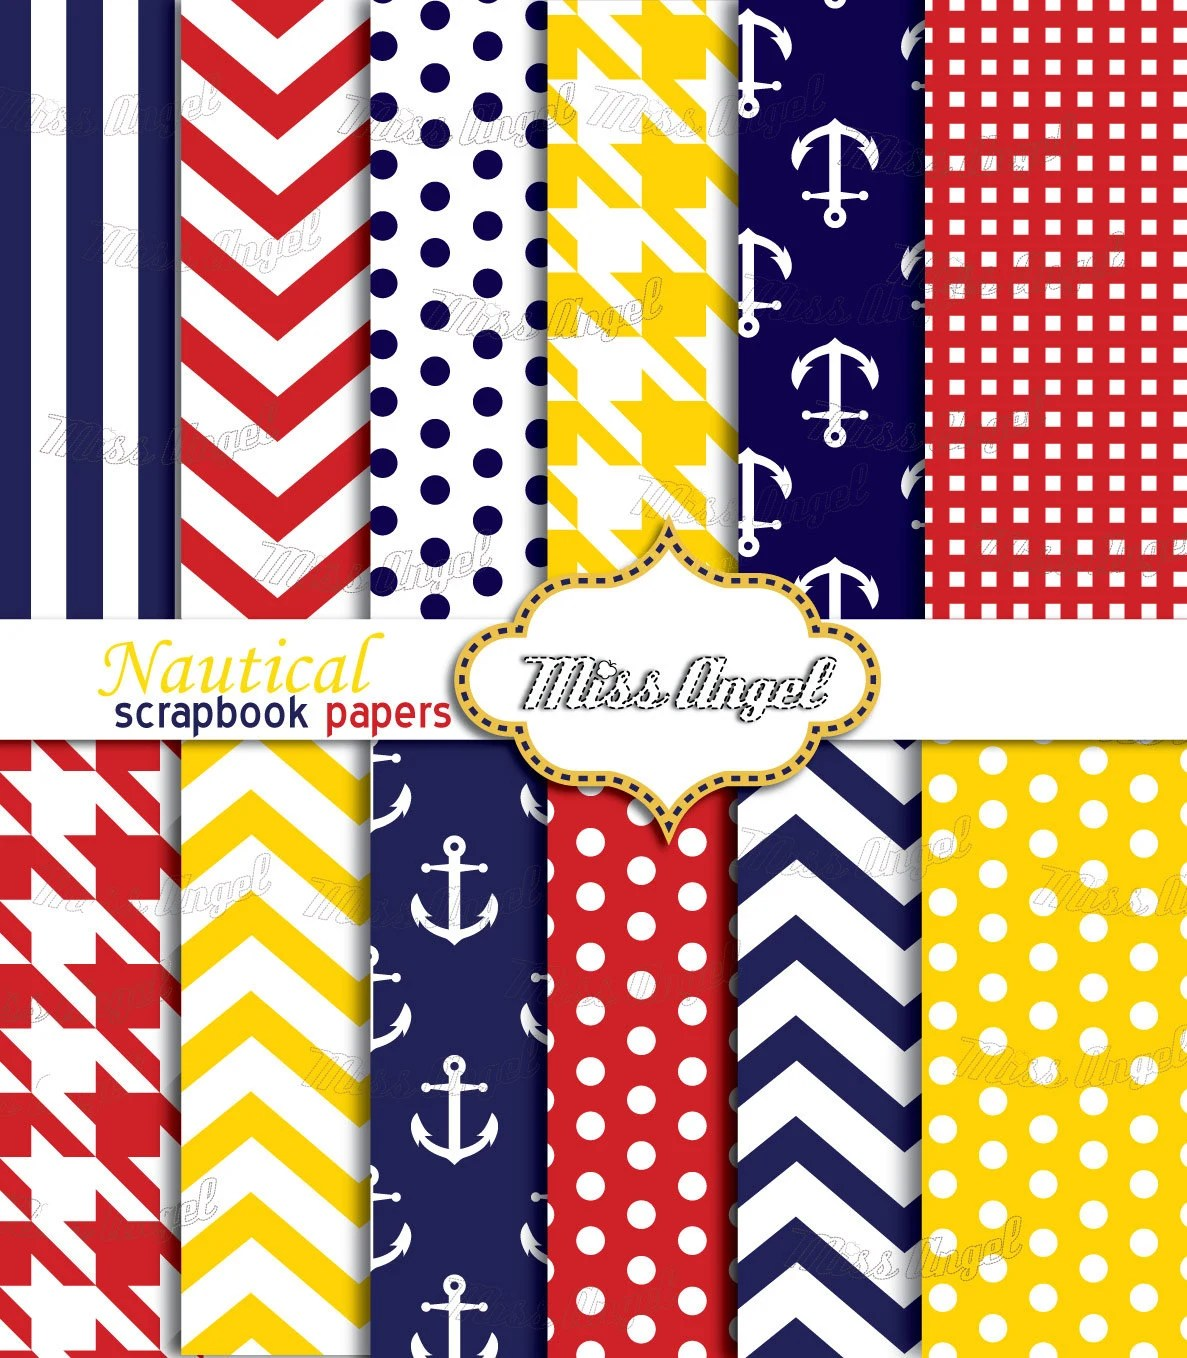 Nautical Scrapbook Papers Yellow Red Navy Digital Sheets Pack